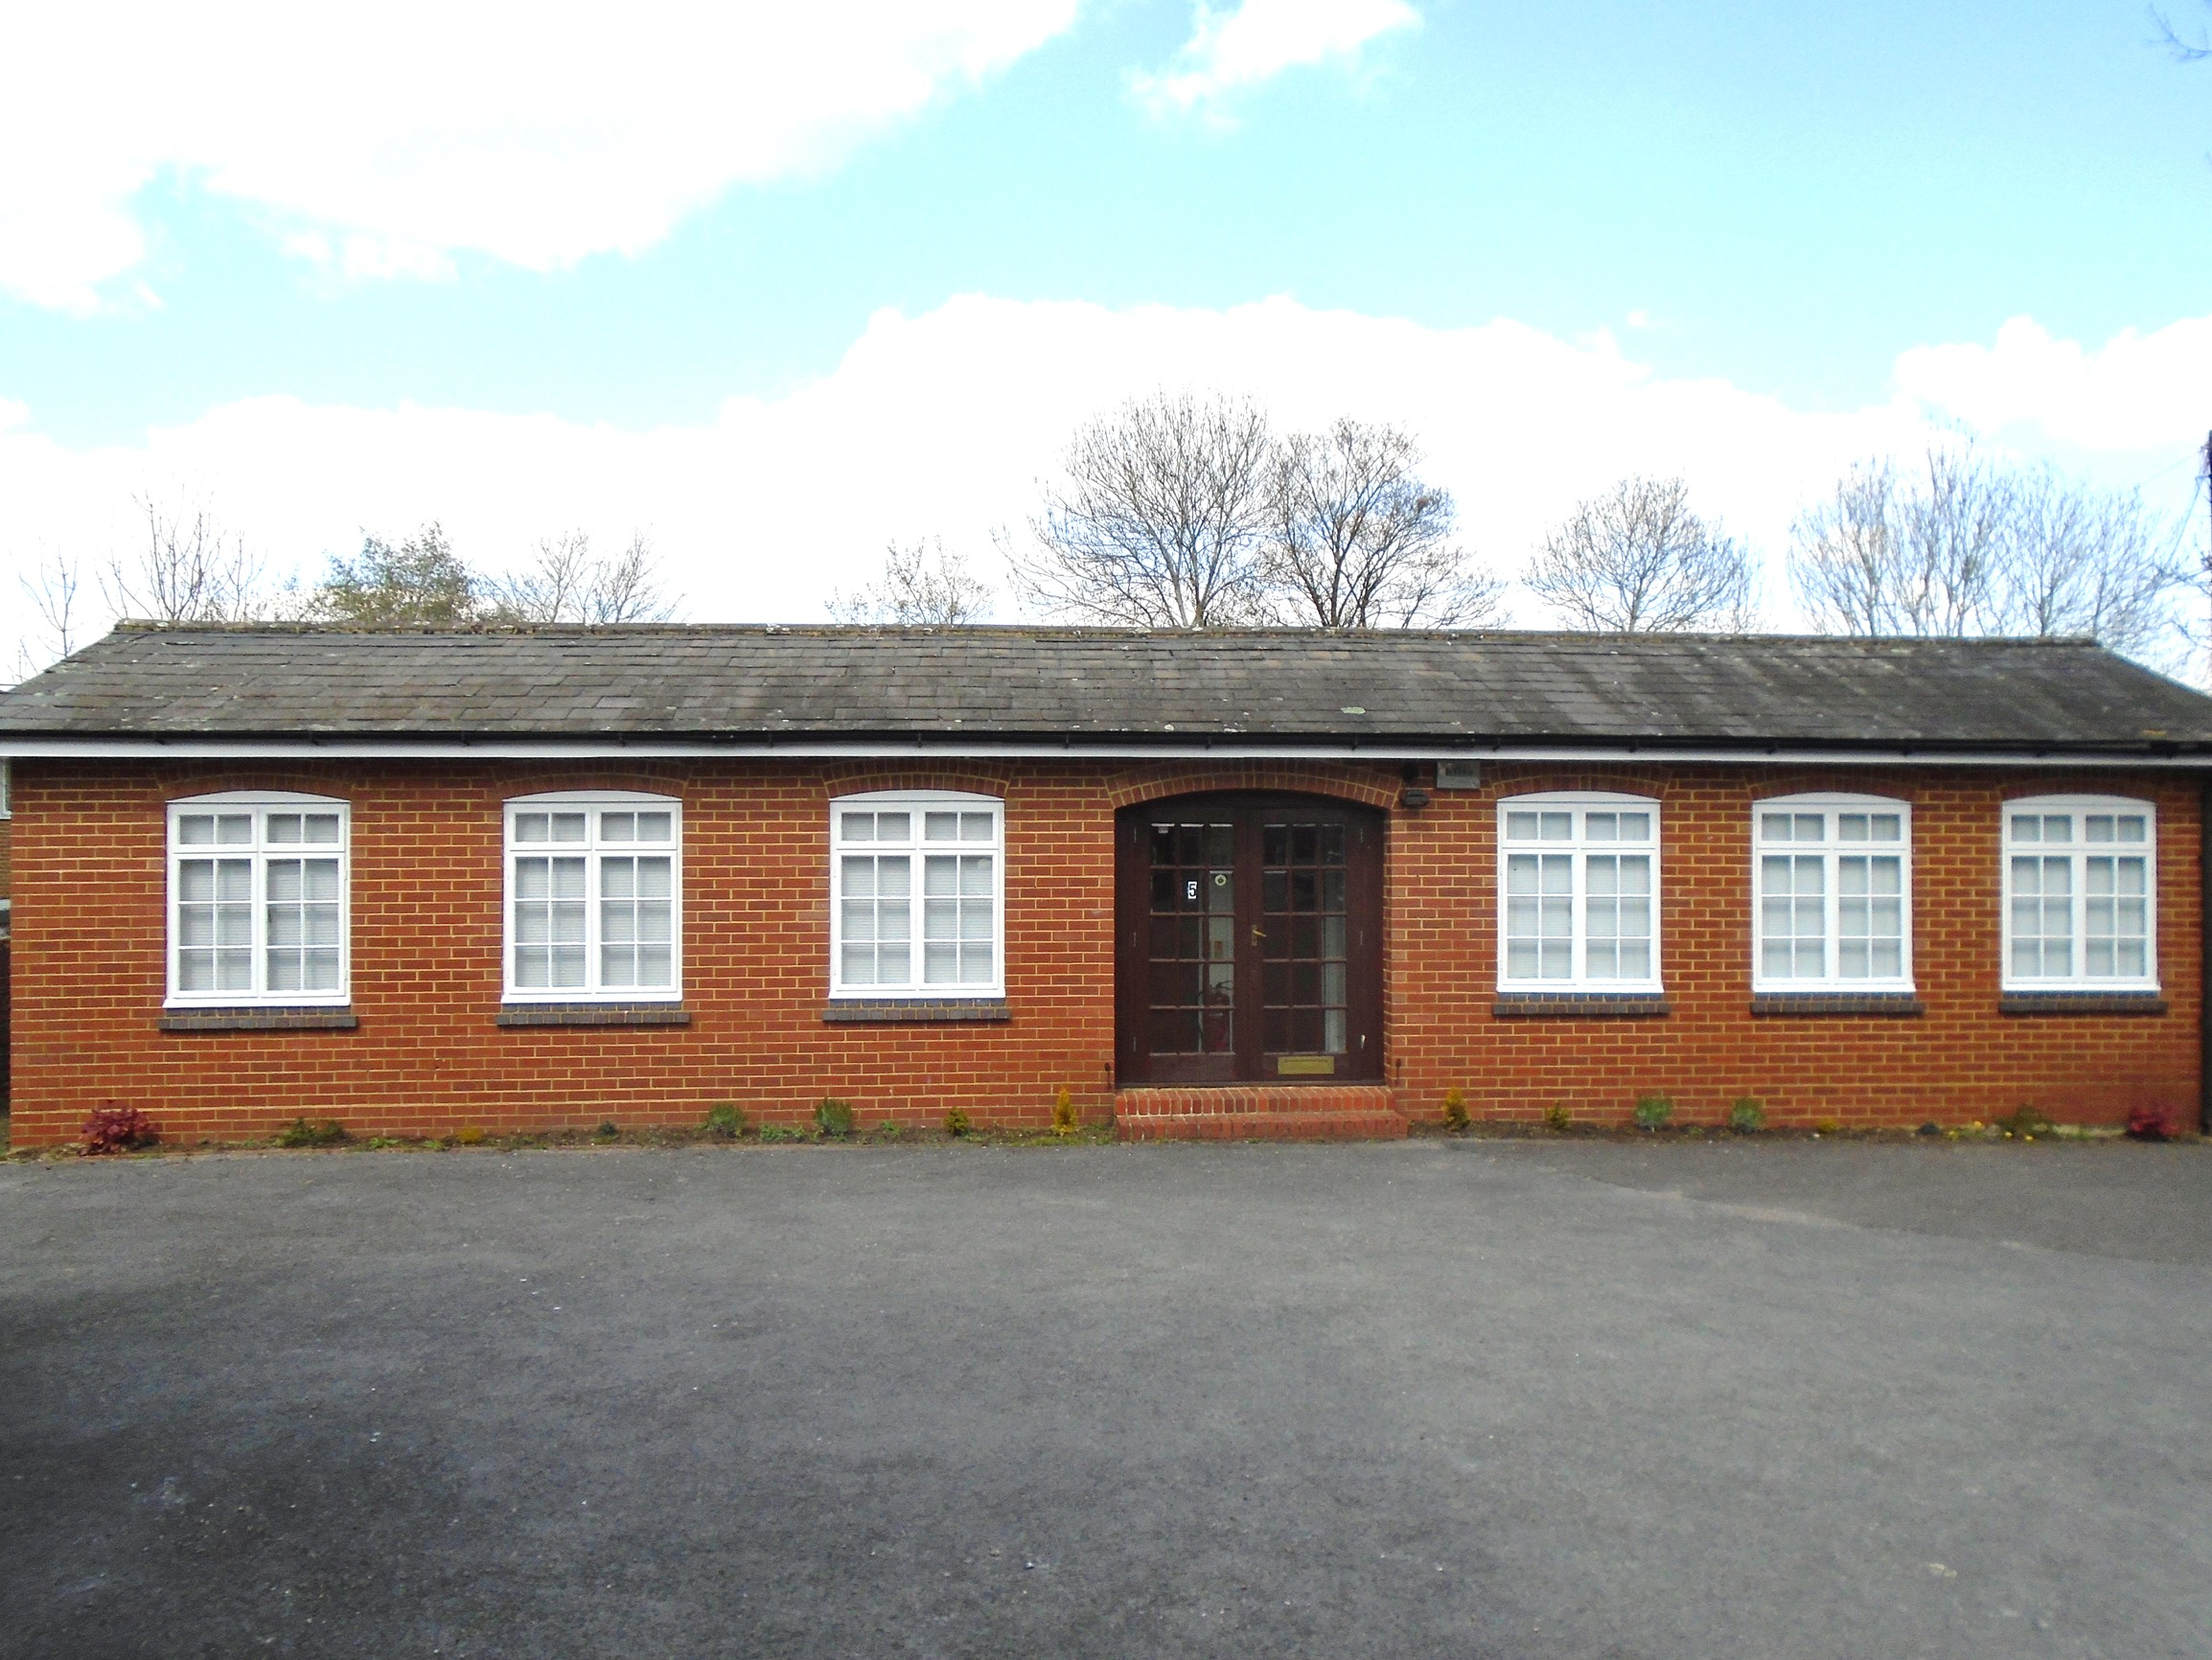 DETACHED CLASS E BUILDING APPROX 480 SQ. FT. WITH 3 PARKING SPACES.  £7,800 per annum.  Unit 5, The Old Tannery, Oakdene Road, Redhill, Surrey RH1 6BT.